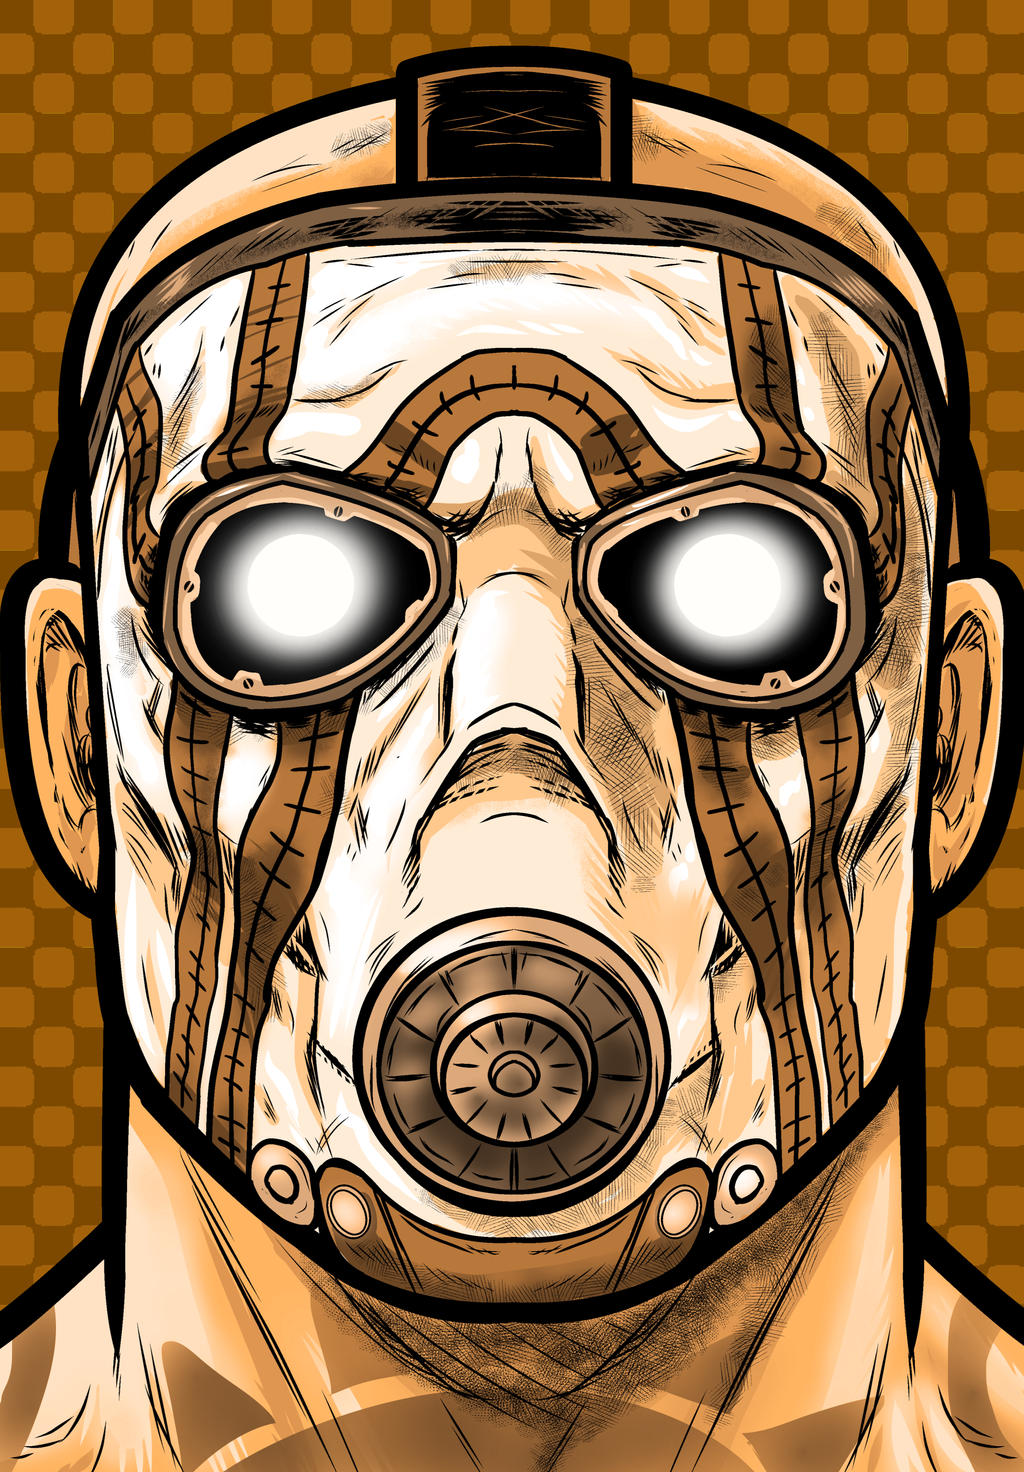 Borderlands Psycho by Thuddleston on DeviantArt